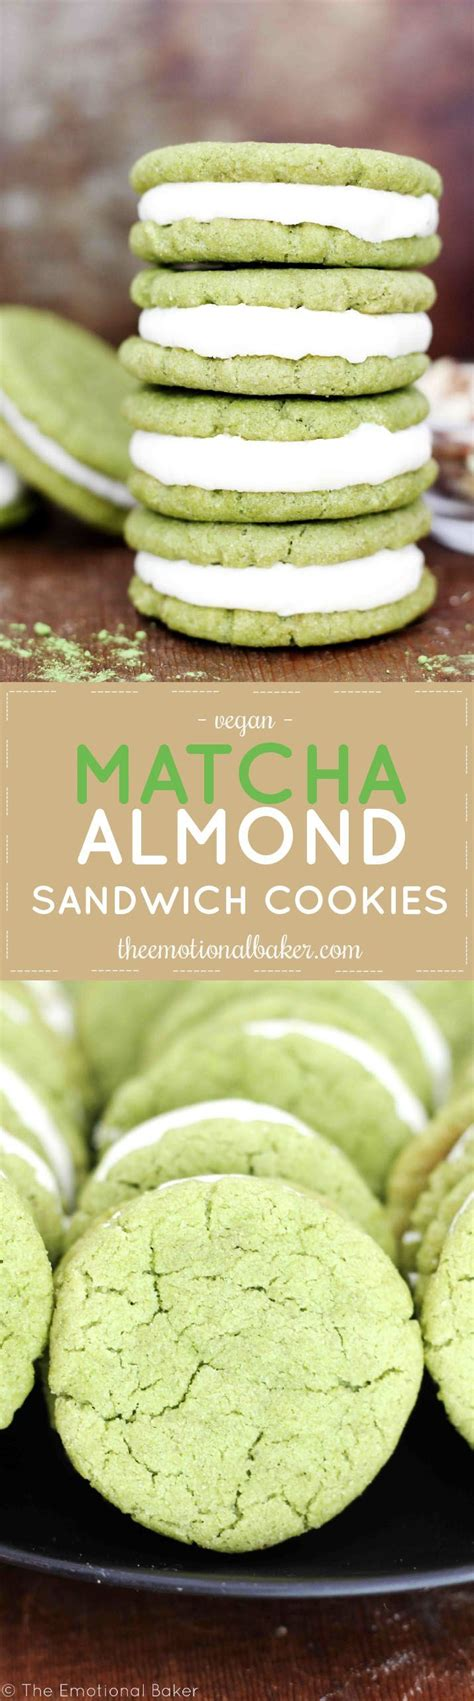 Cookies Green Tea Dengan Sensasi Coklat Mint 247 best images about green desserts on pistachios green cupcakes and mint